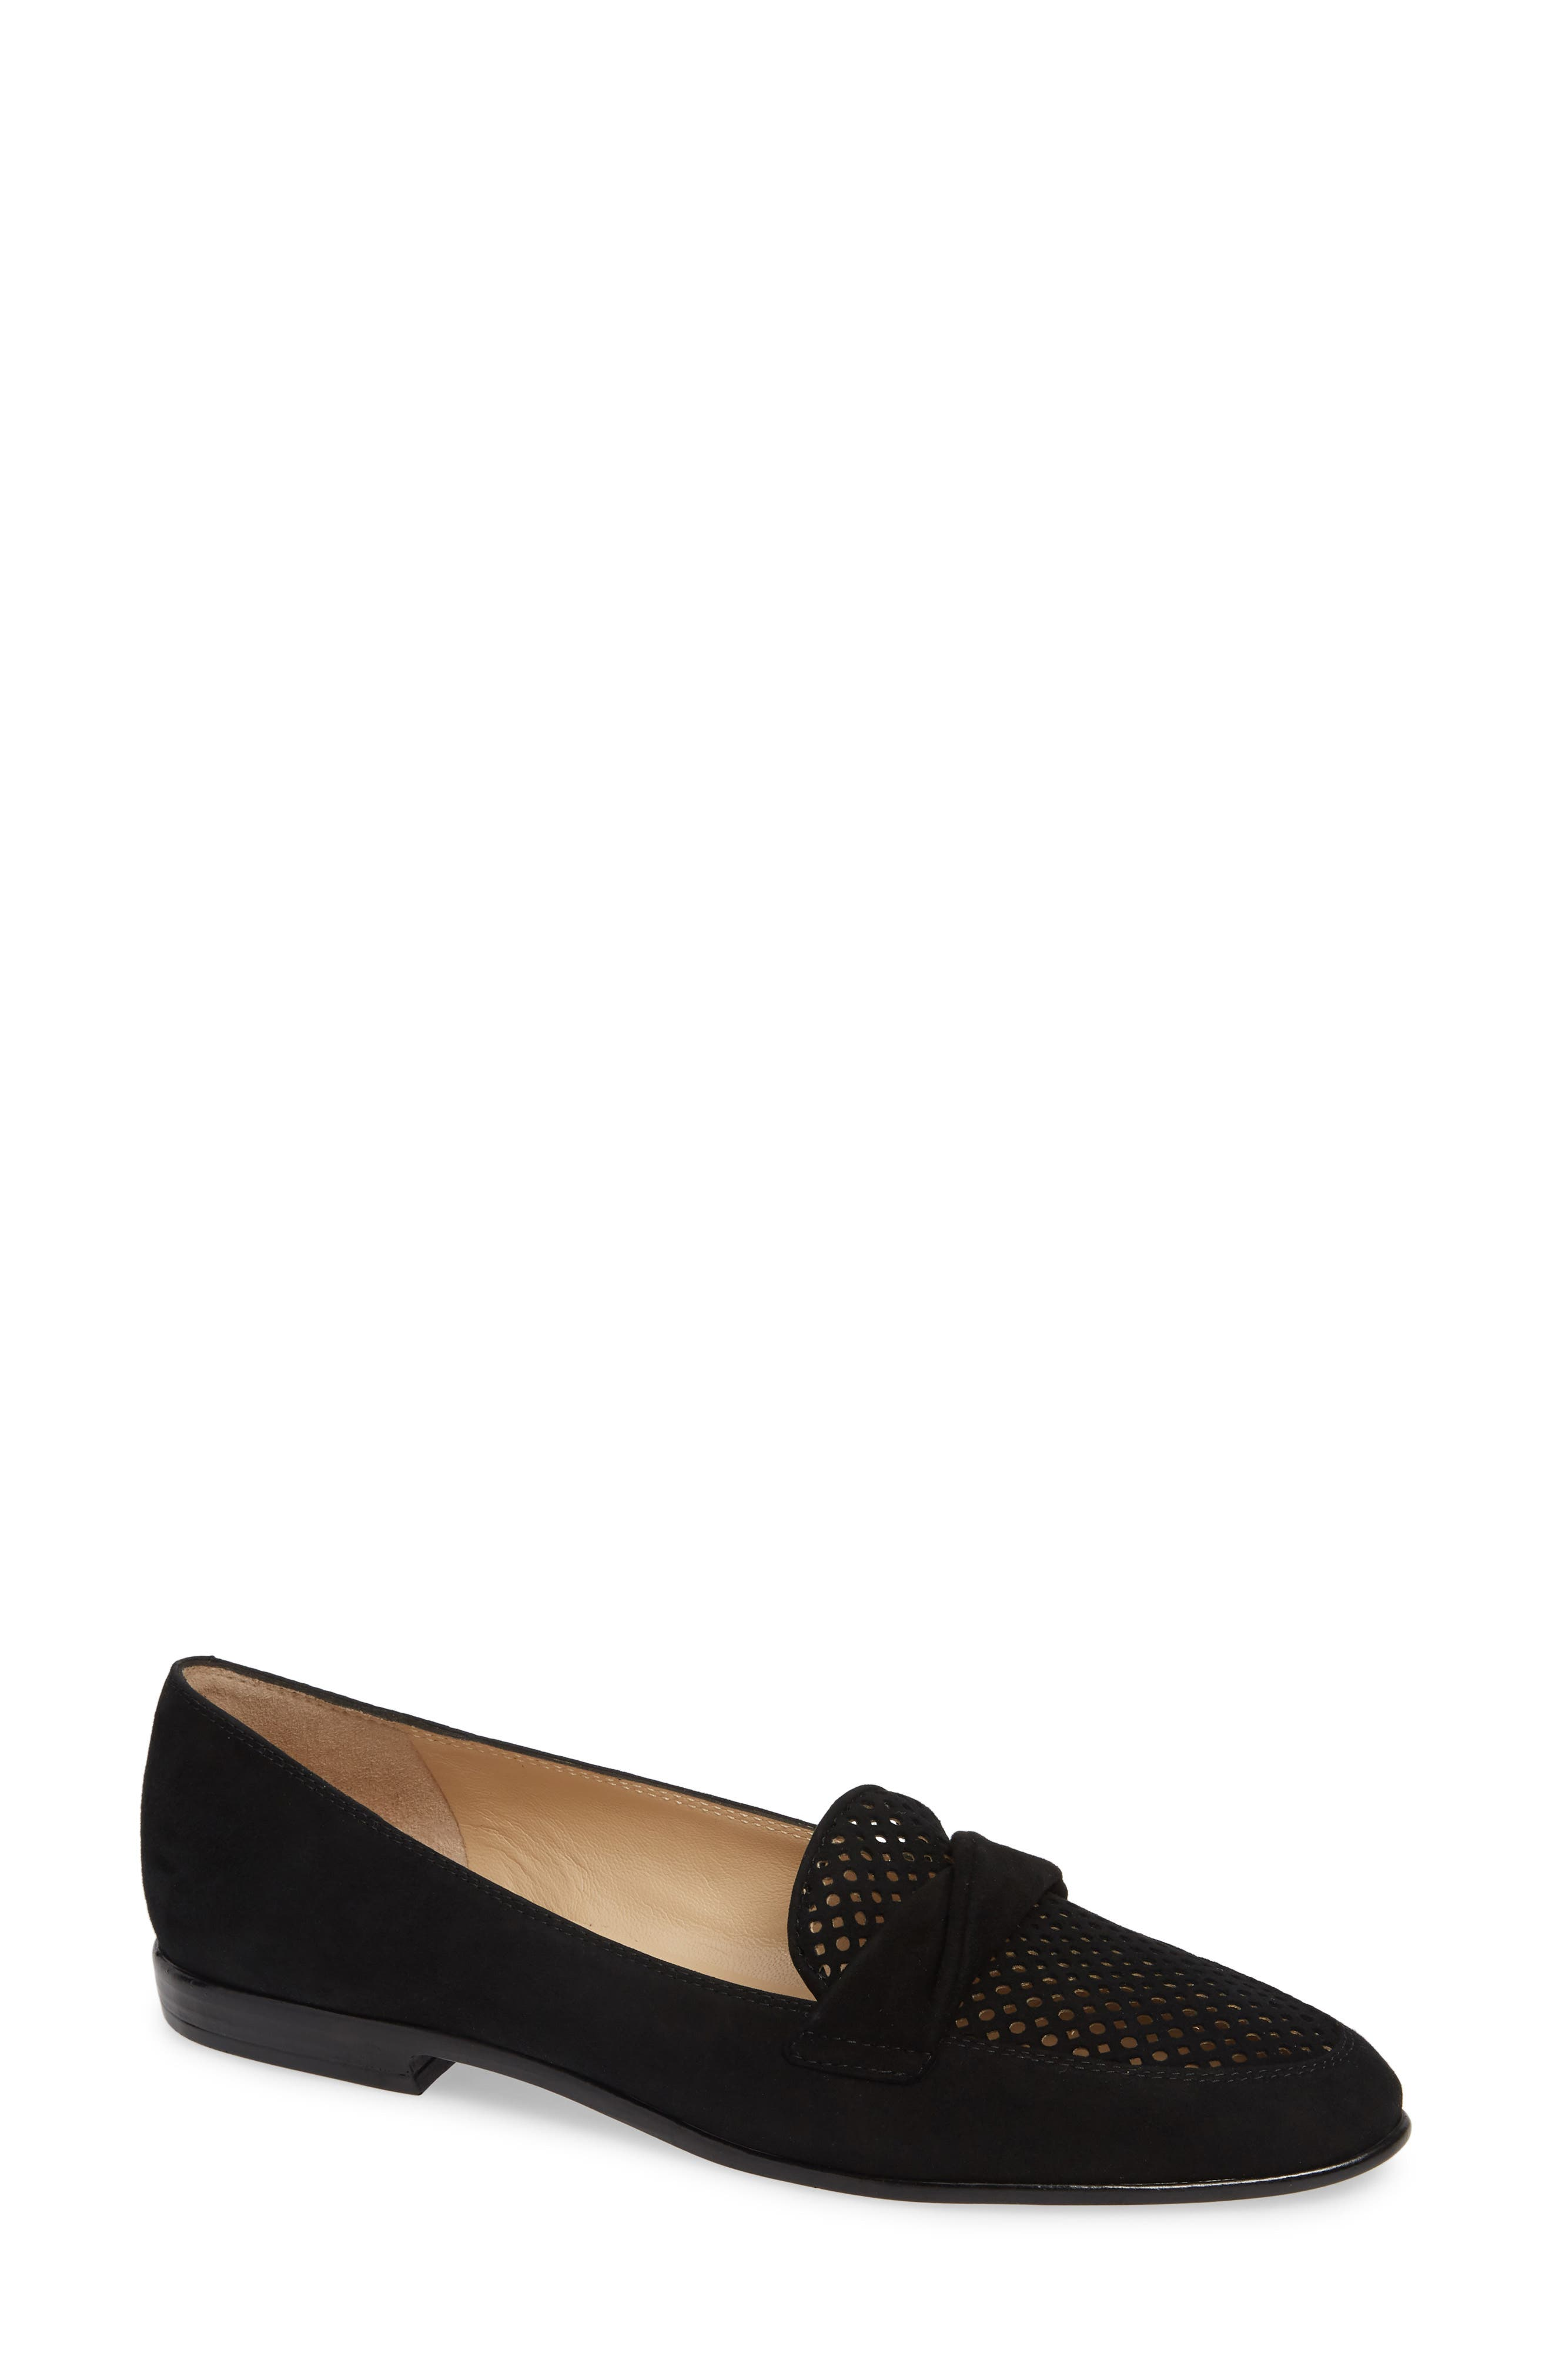 AMALFI BY RANGONI,                             Osimo X Perforated Loafer,                             Main thumbnail 1, color,                             BLACK SUEDE